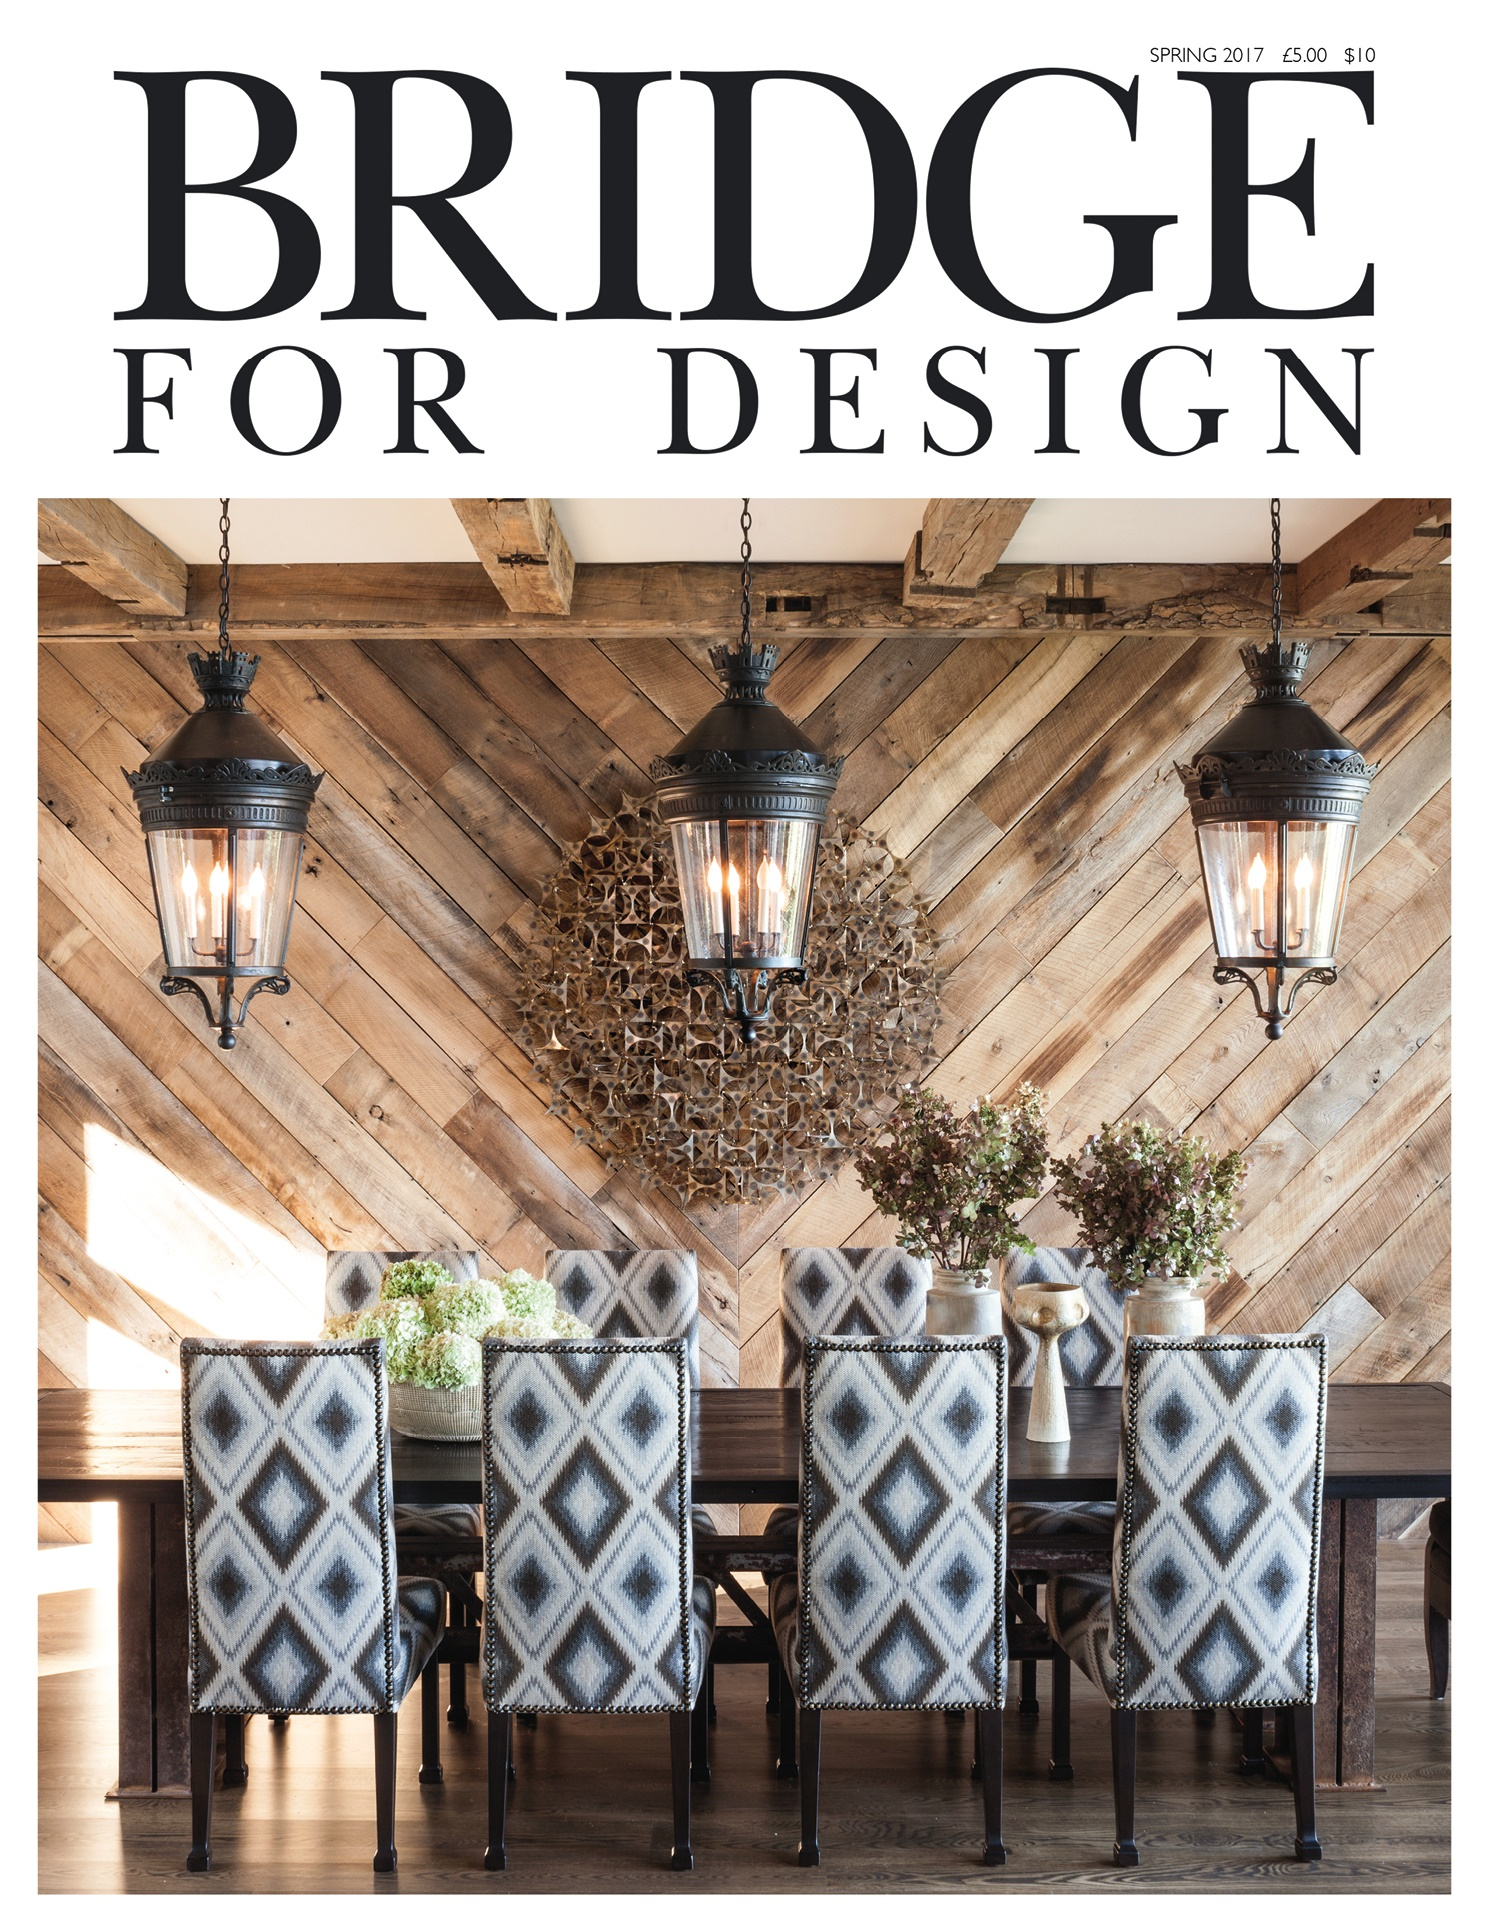 Bridge for Design Spring 2017